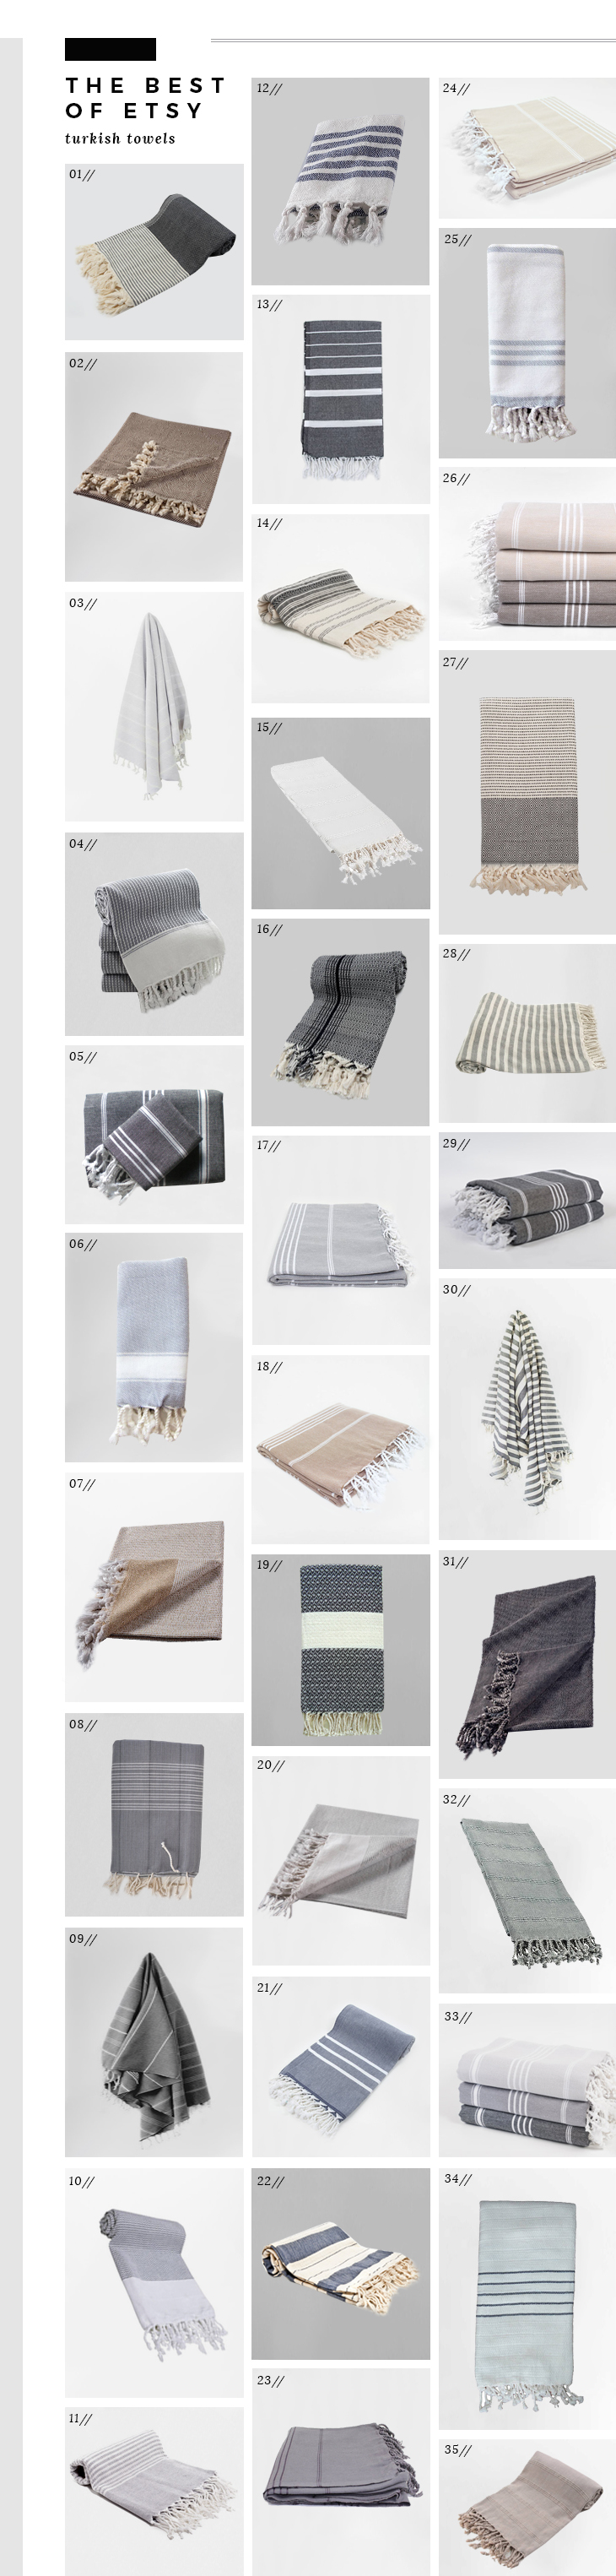 Best of Etsy - Turkish Towels